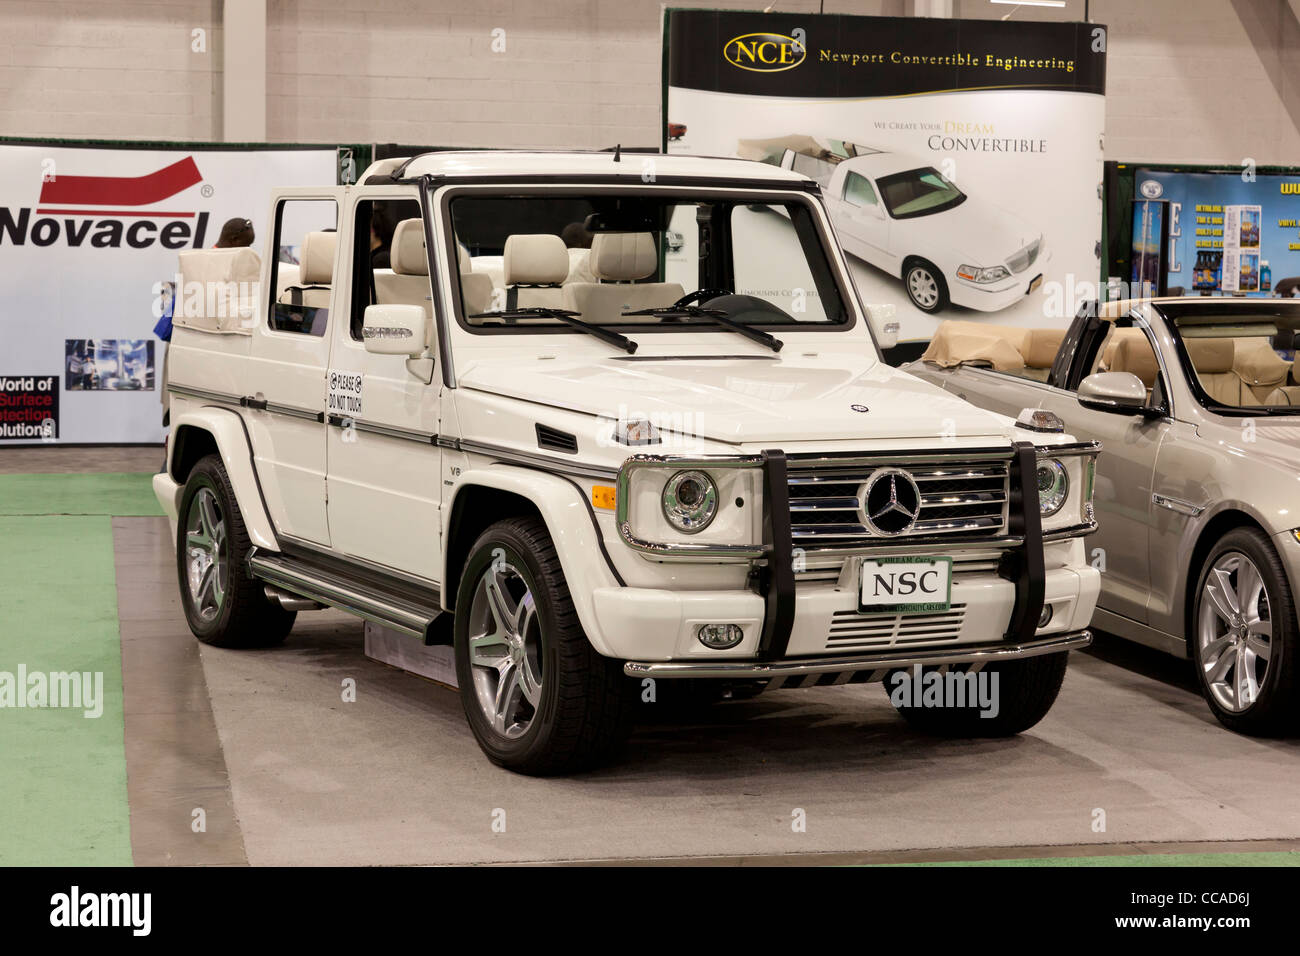 Mercedes Benz G-Class cross-country vehicle - Stock Image